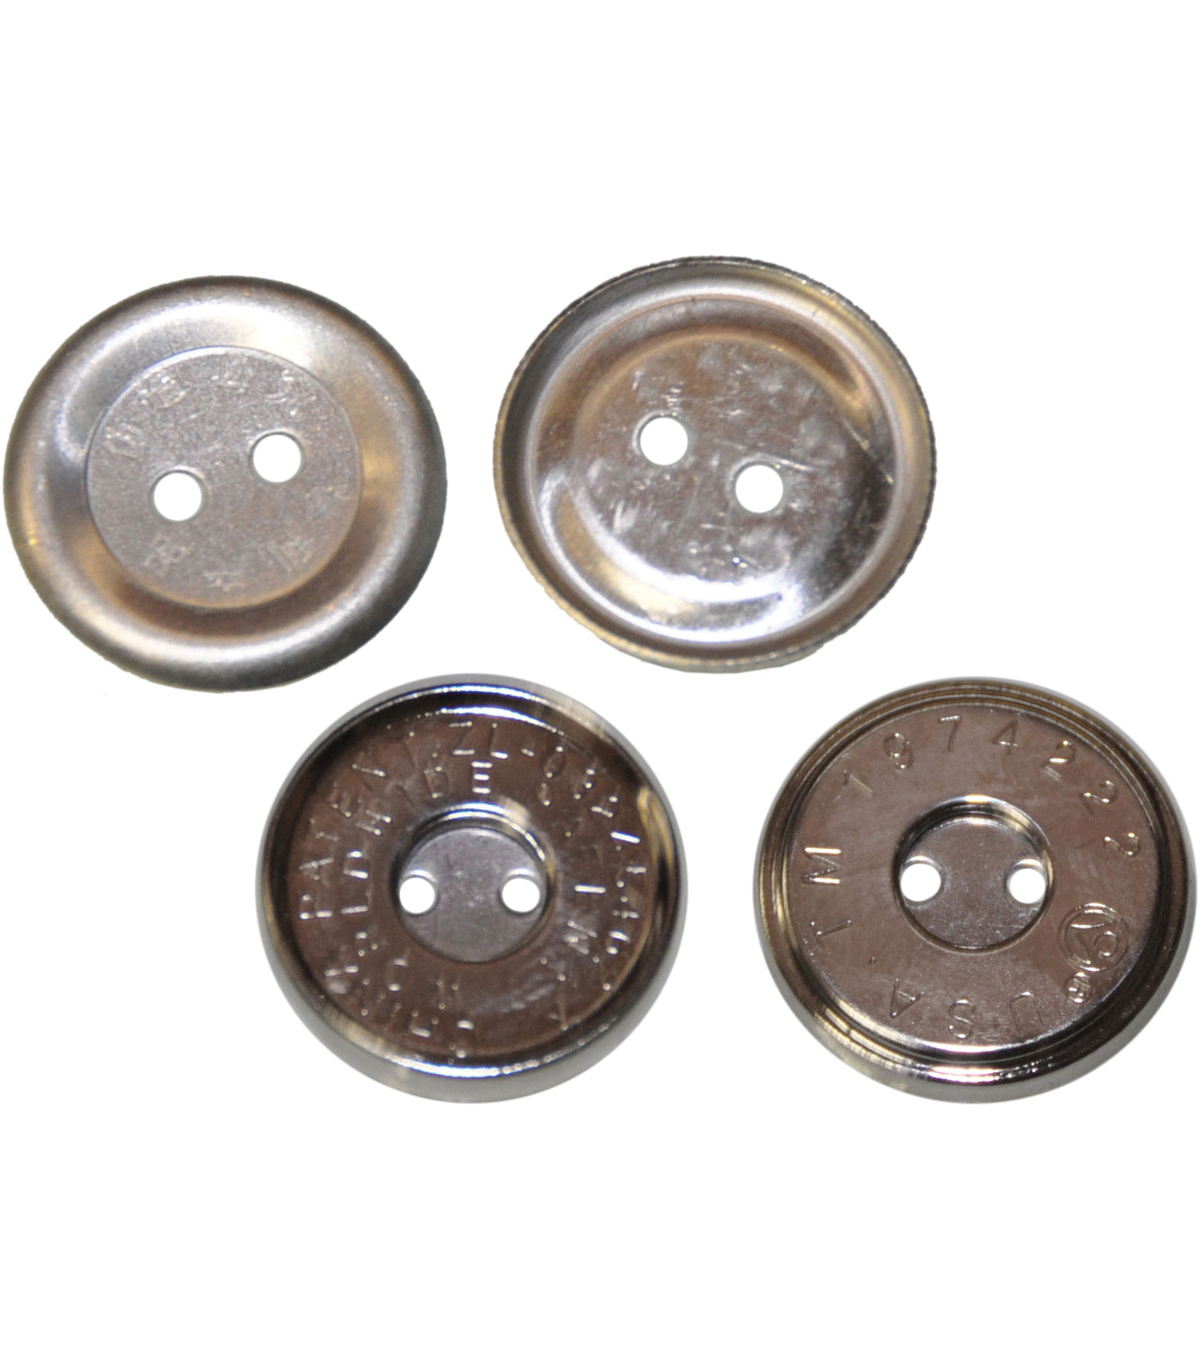 Lacis 14 mm Sew-On Magnet Closure-1PK/Silver